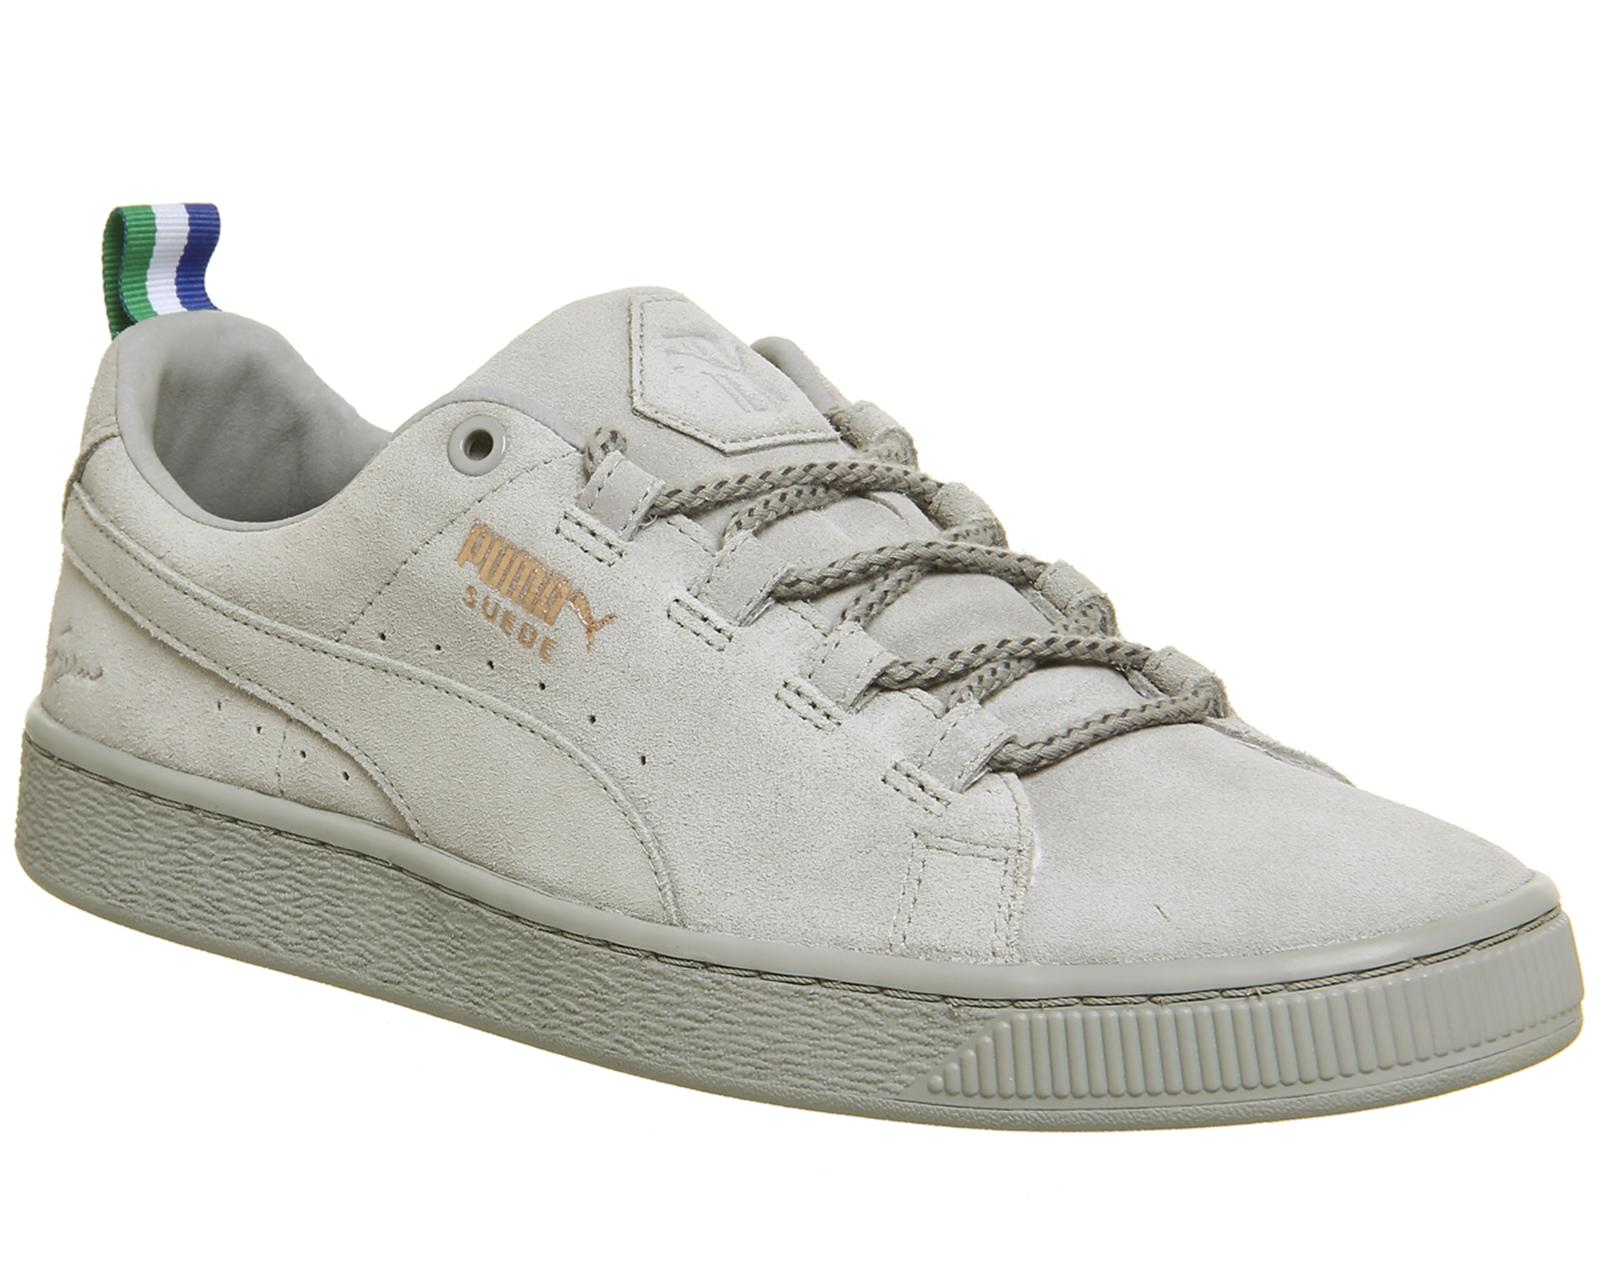 PUMA Suede Classic Trainers in Gray for Men - Lyst babf1b569